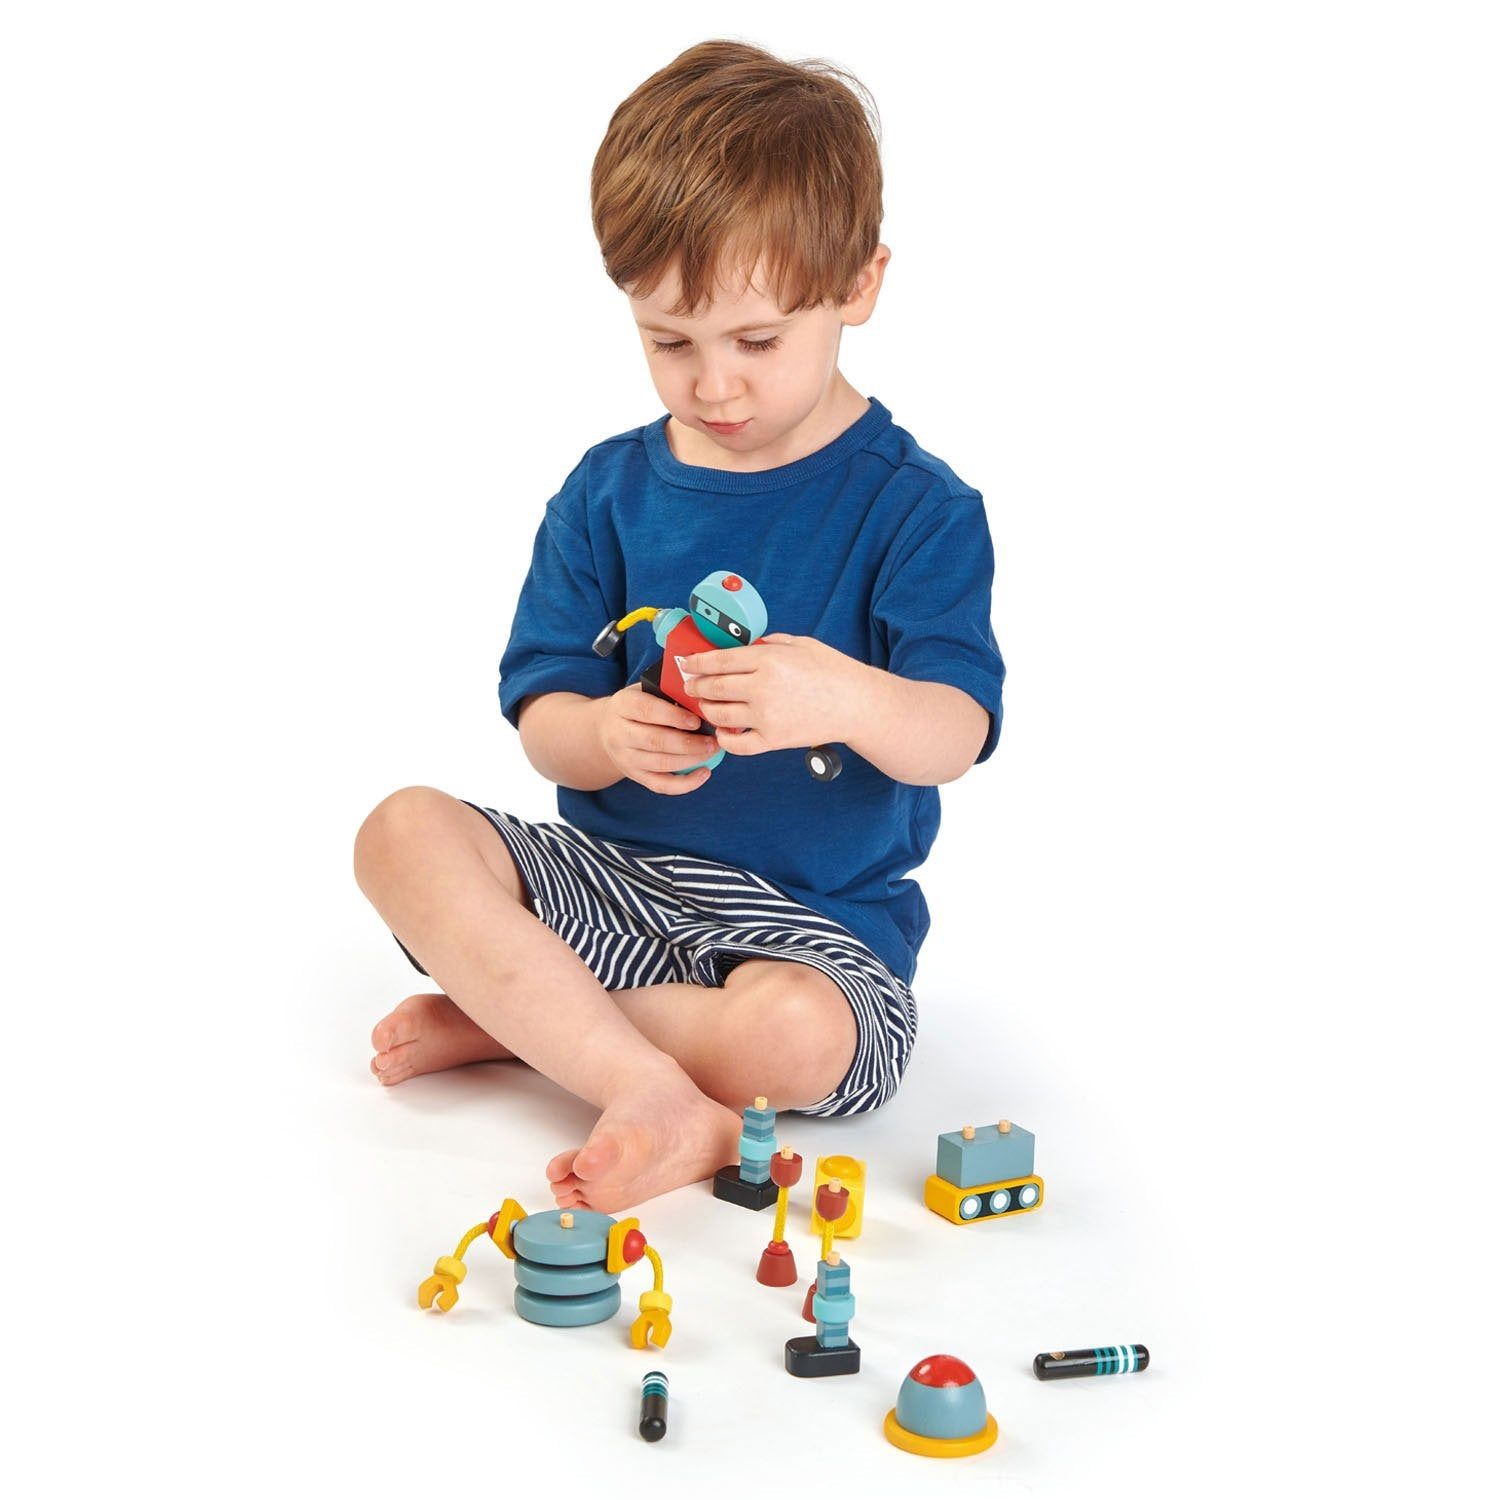 Tender Lear Toys Robot Construction